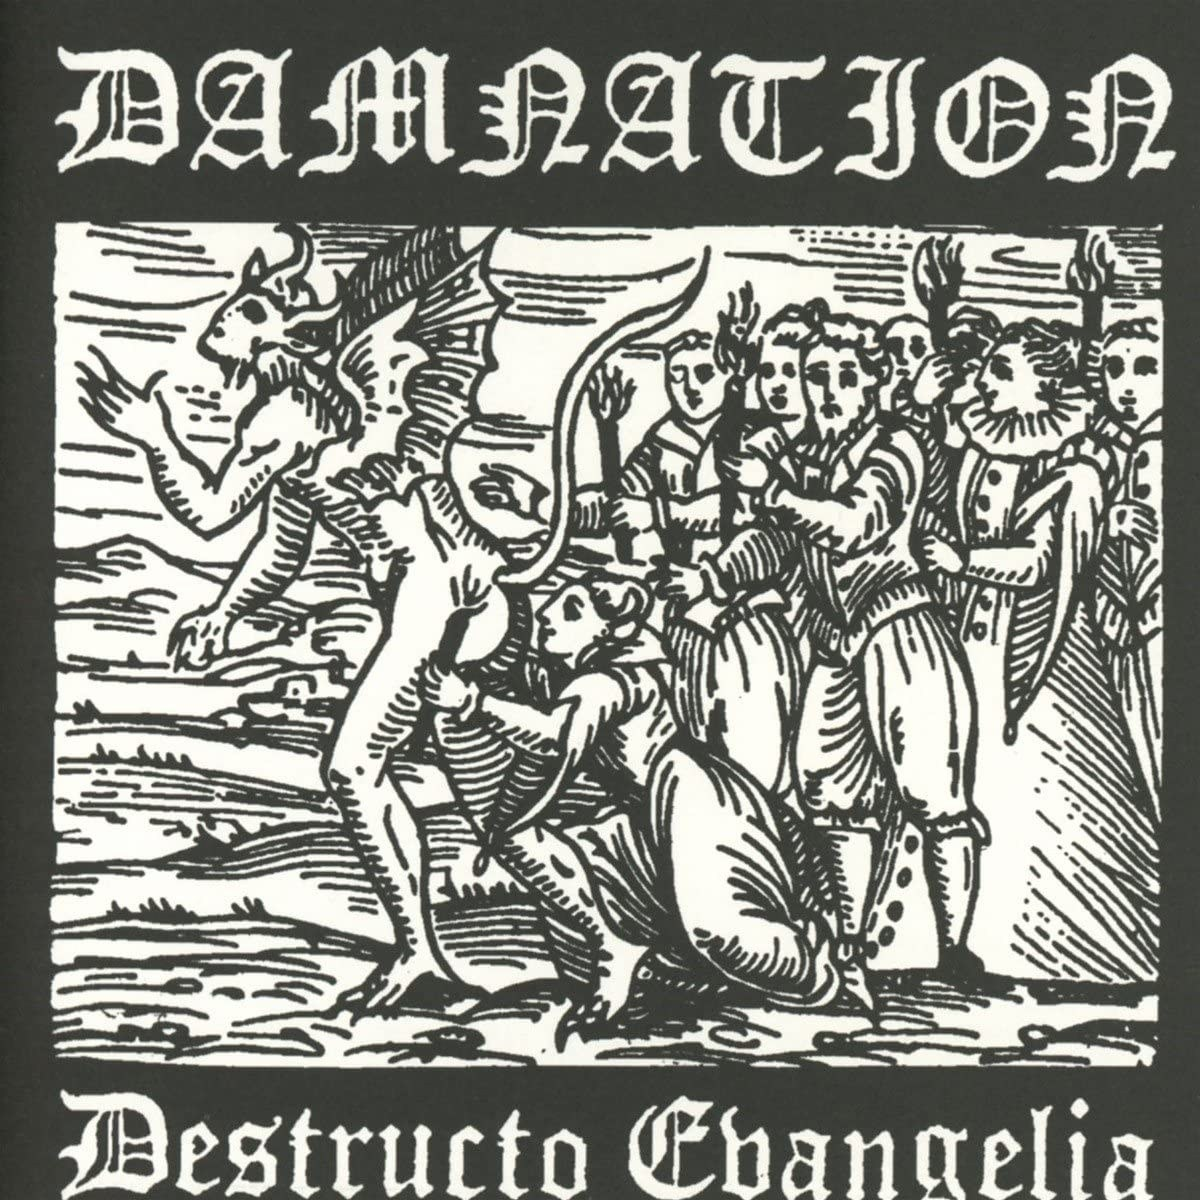 Review for Damnation (SWE) - Destructo Evangelia